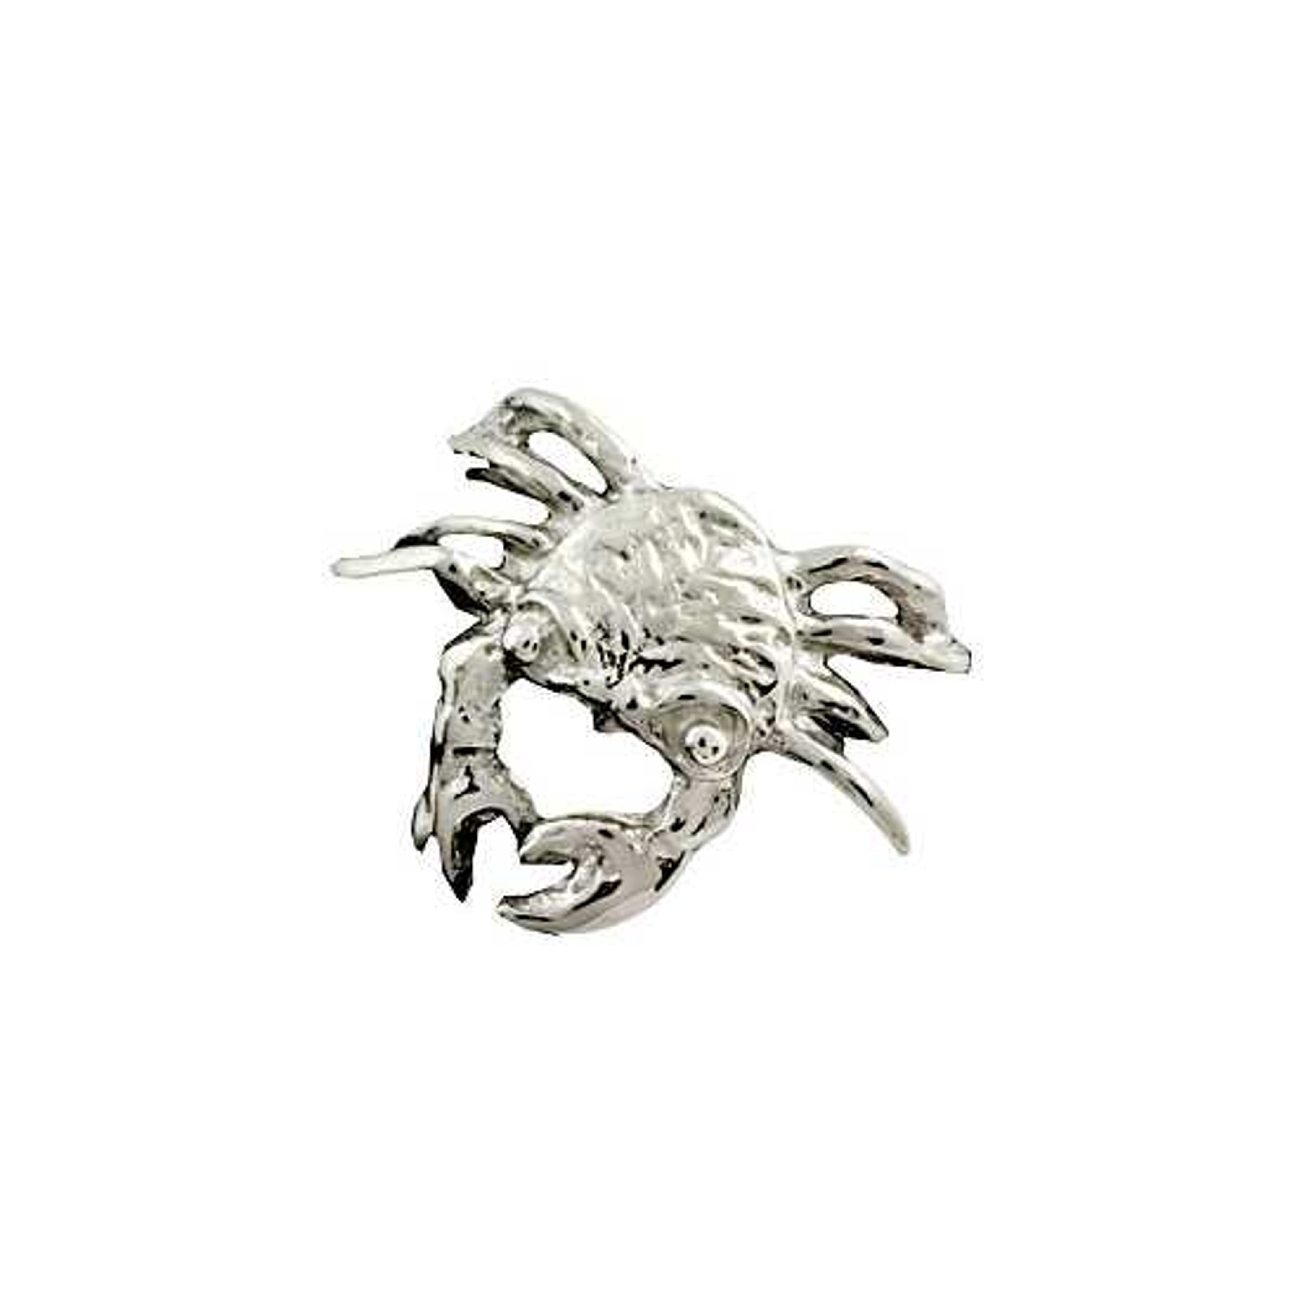 Pierceless Left Only Ocean Crab Ear Cuff